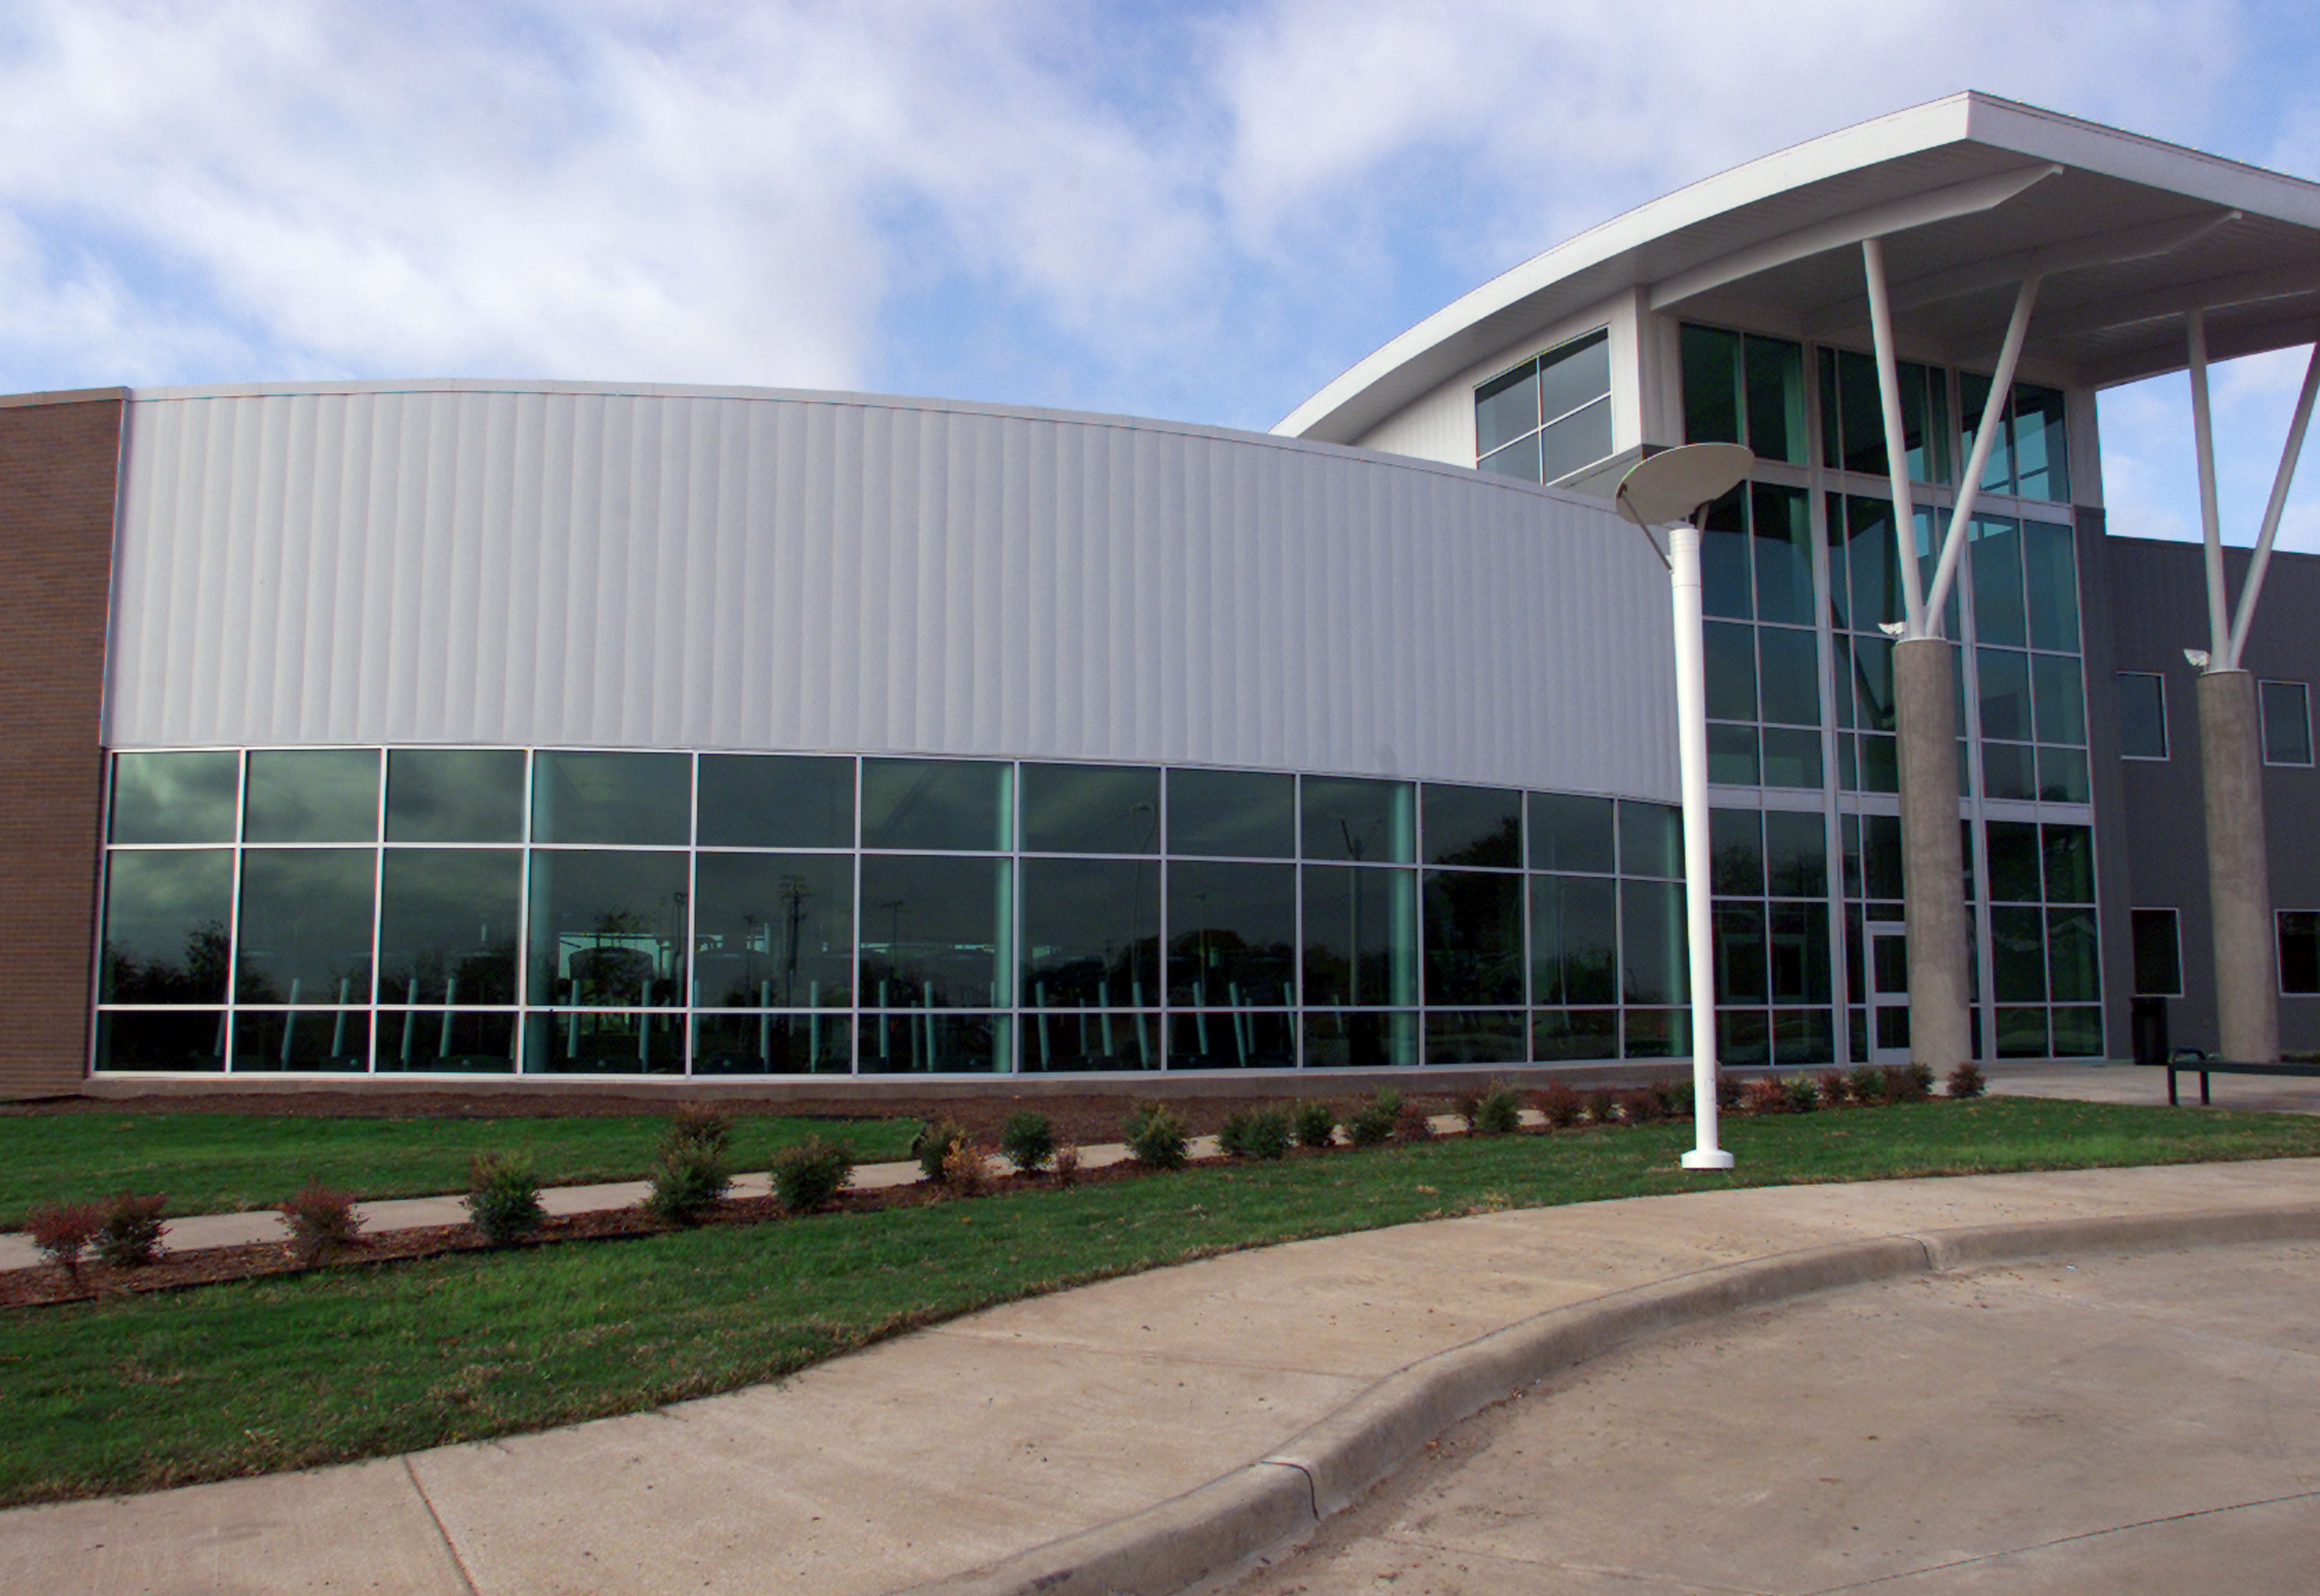 Recreation Center building